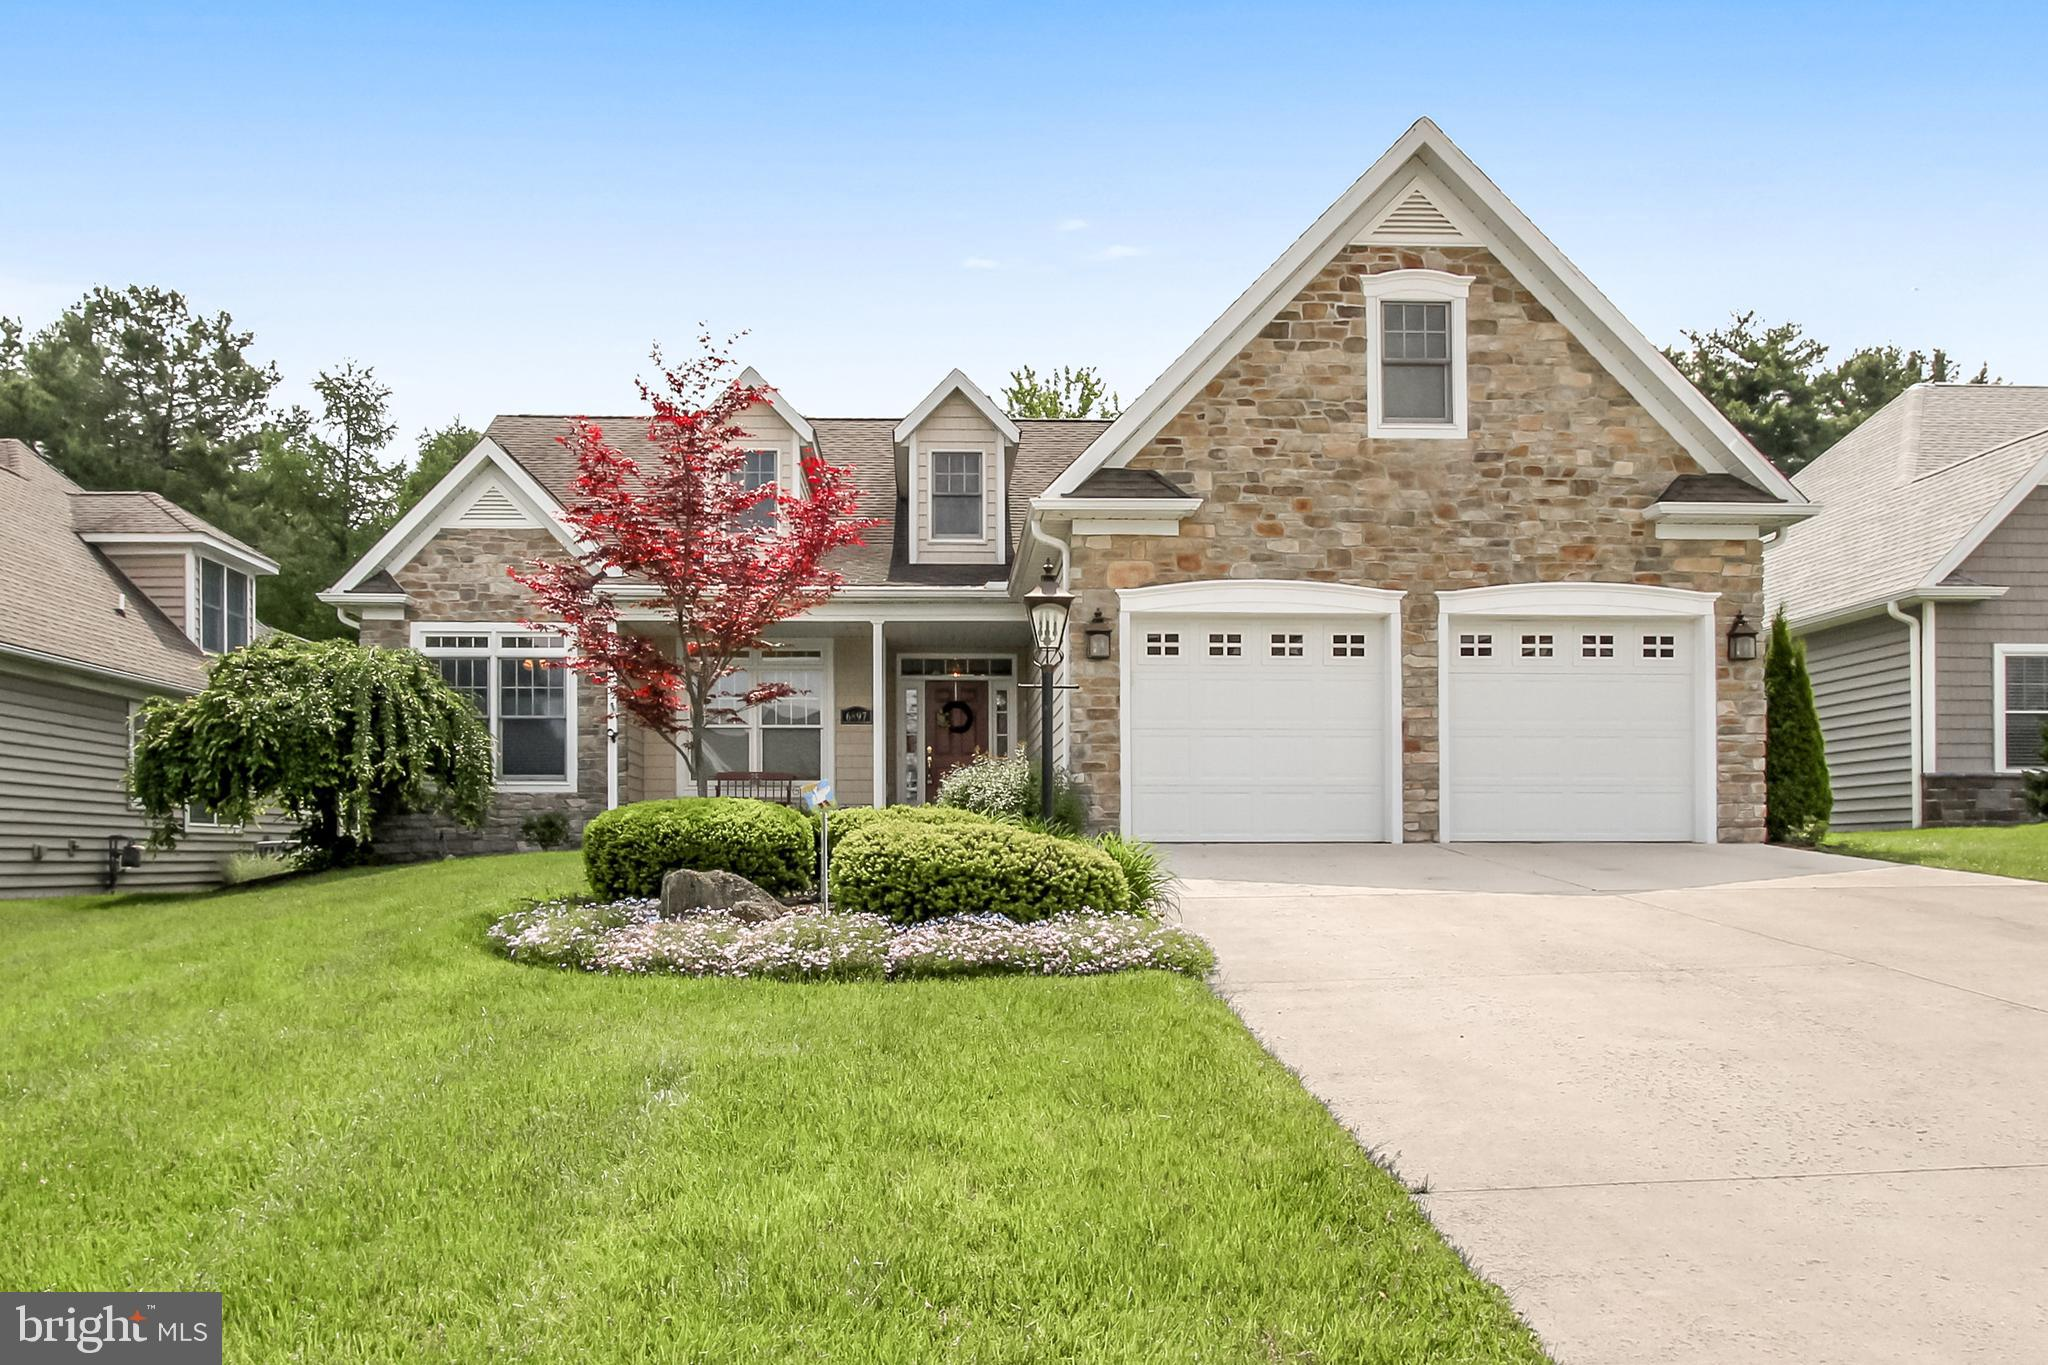 6897 OLD COURSE ROAD, FAYETTEVILLE, PA 17222